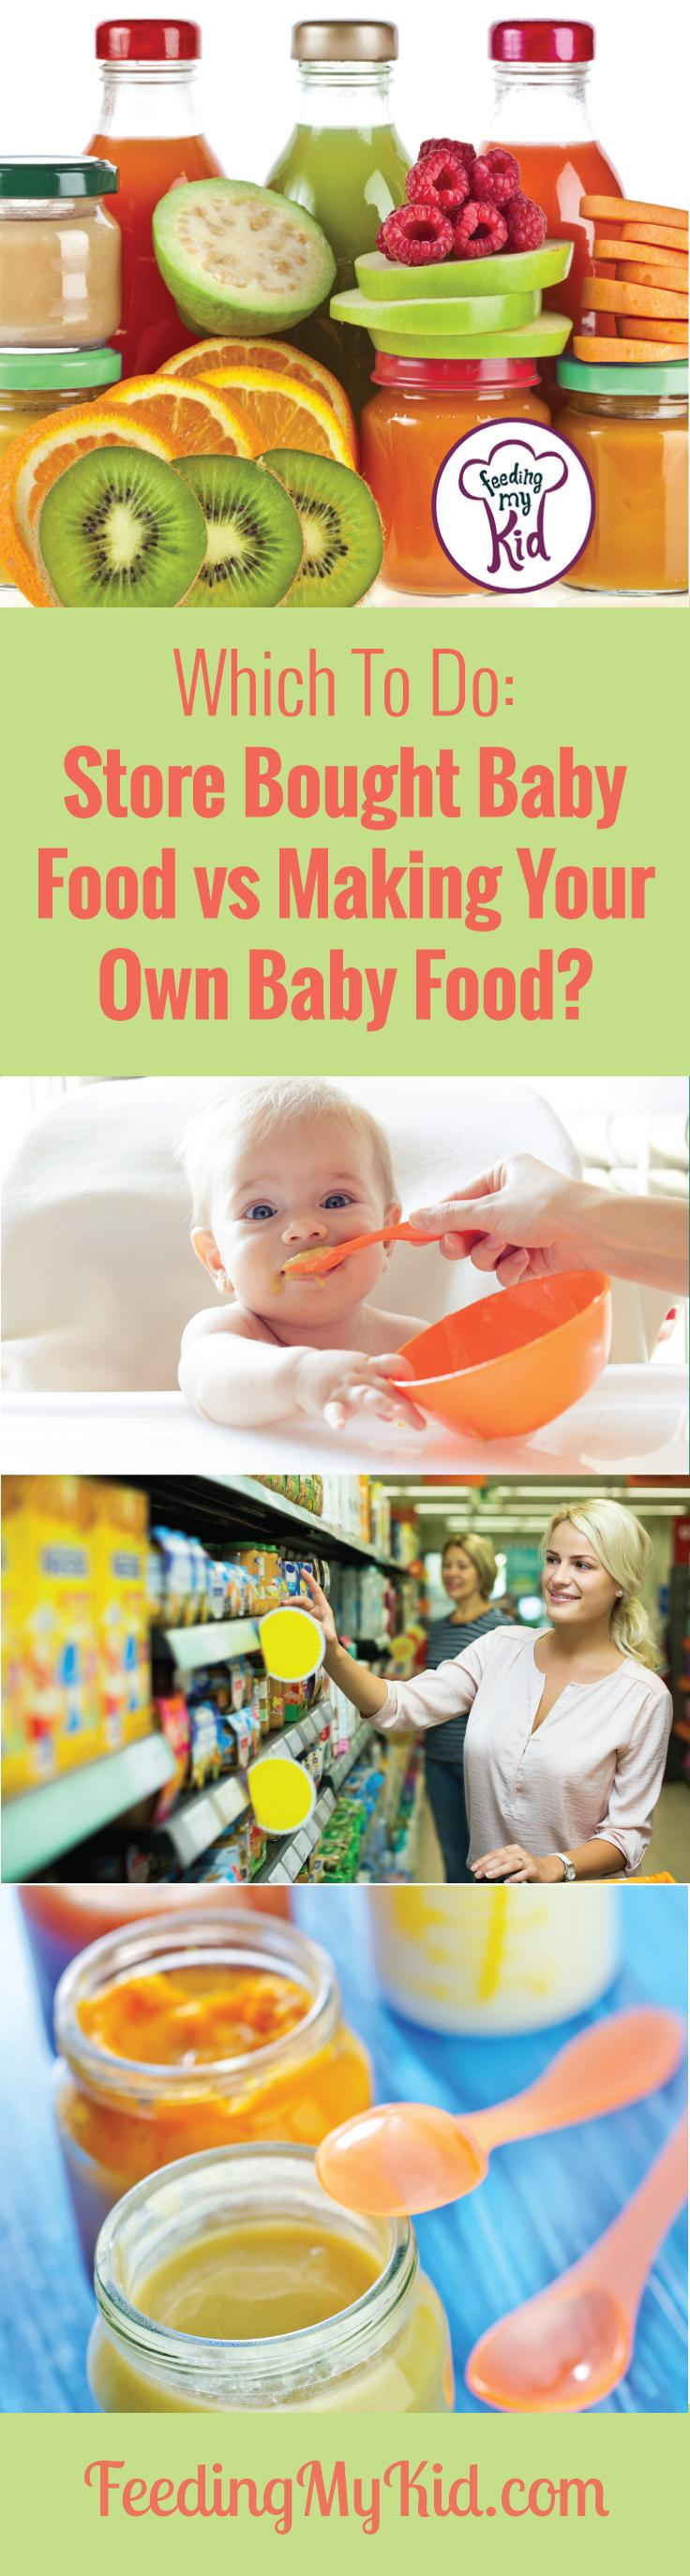 Should You Make Your Own Baby Food? Find out the Pros and Cons